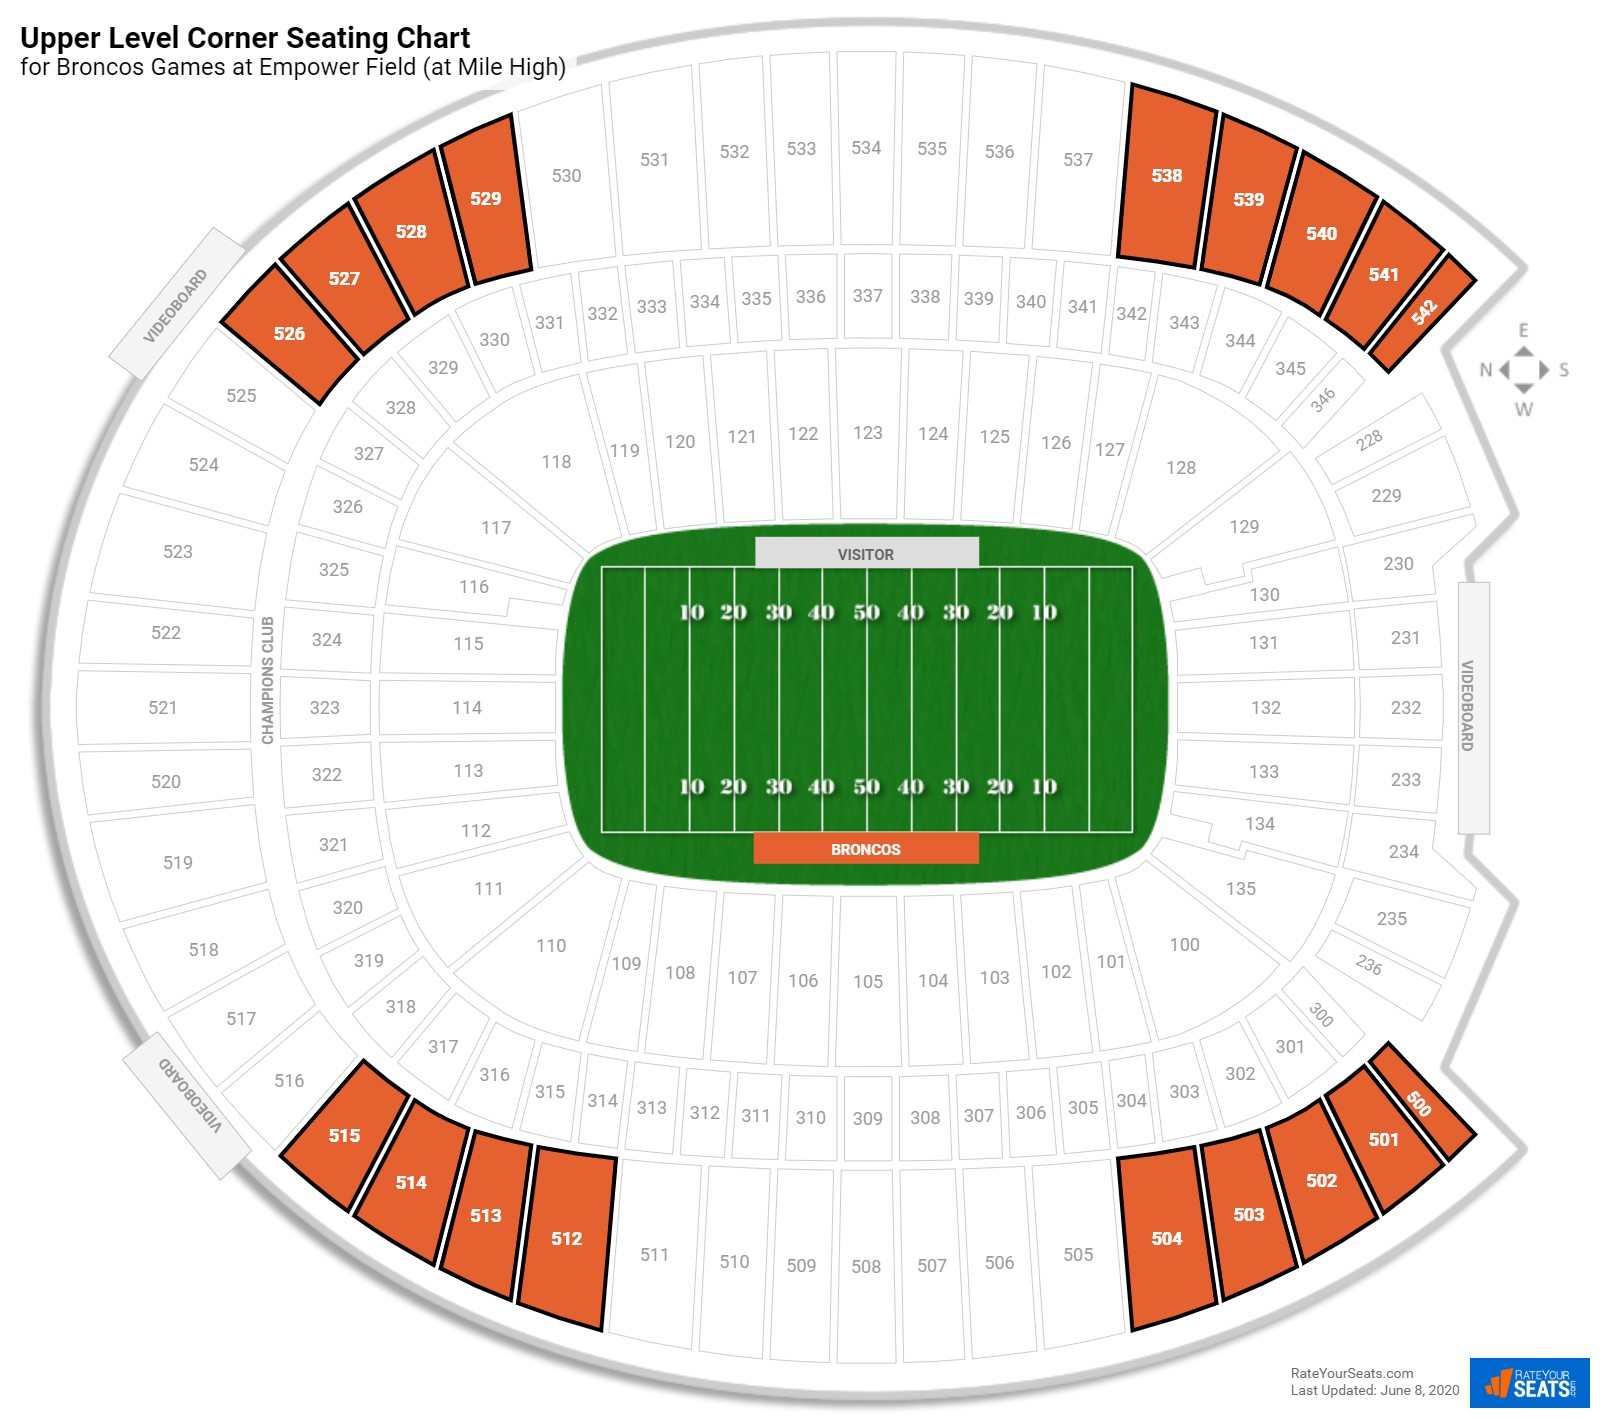 Sports Authority Field Upper Level Corner seating chart